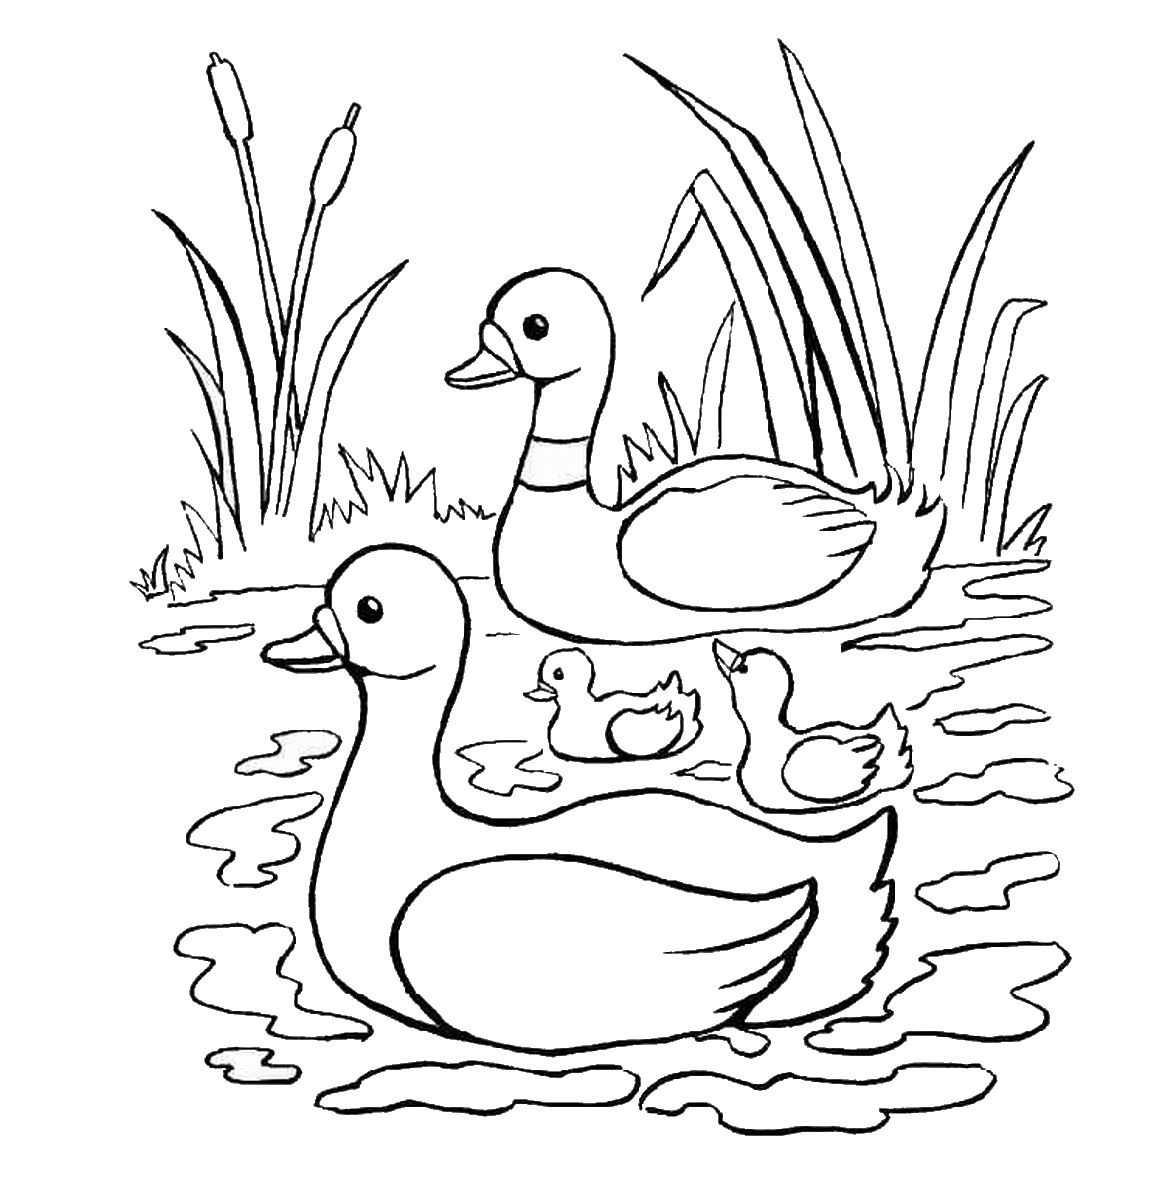 duck printable top 20 free printable duck coloring pages online printable duck